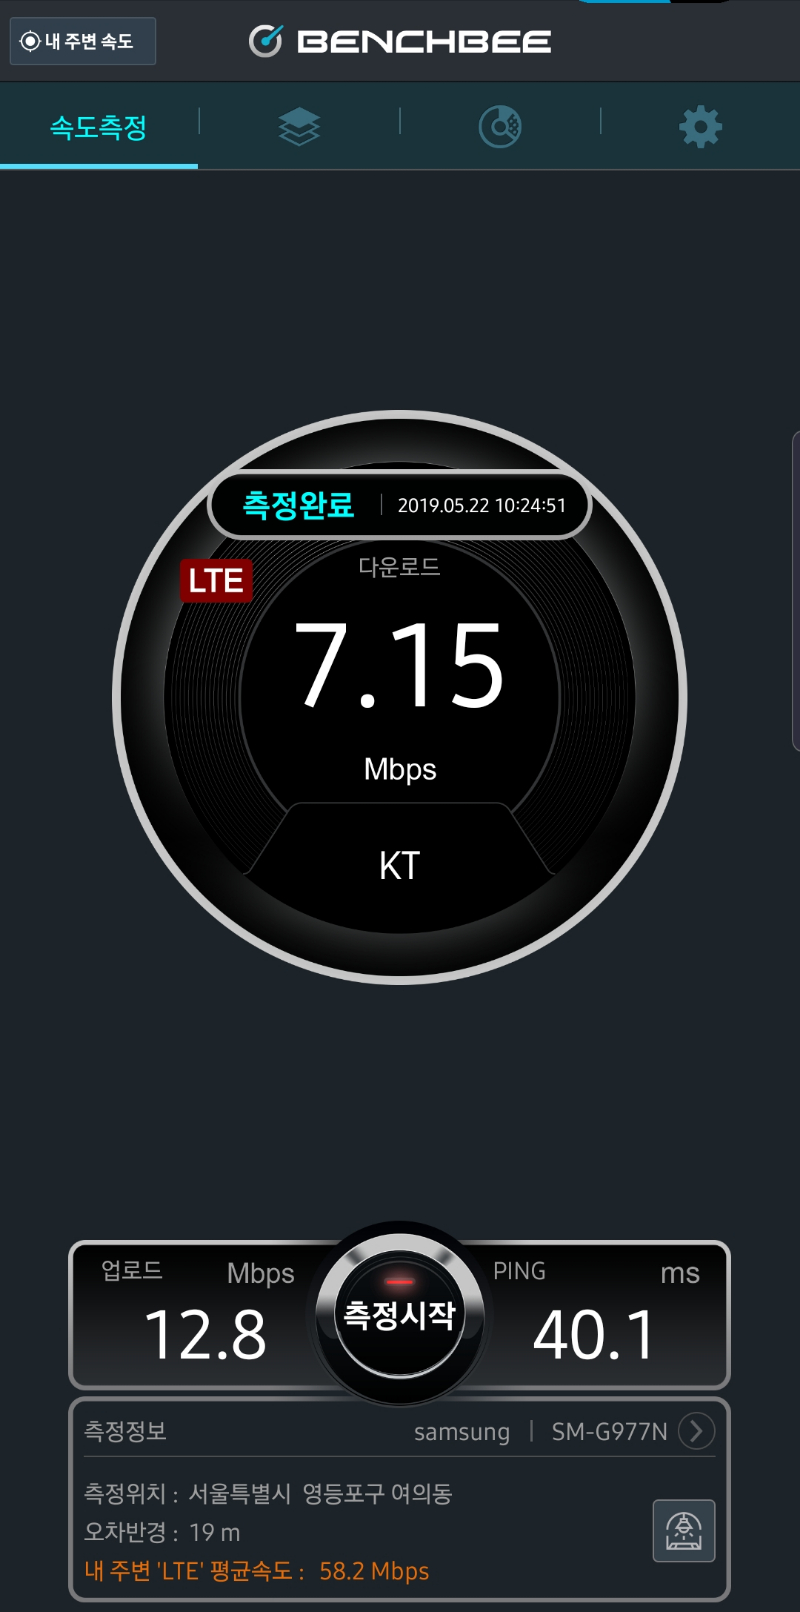 Screenshot_20190522-102458_BenchBee SpeedTest.jpg